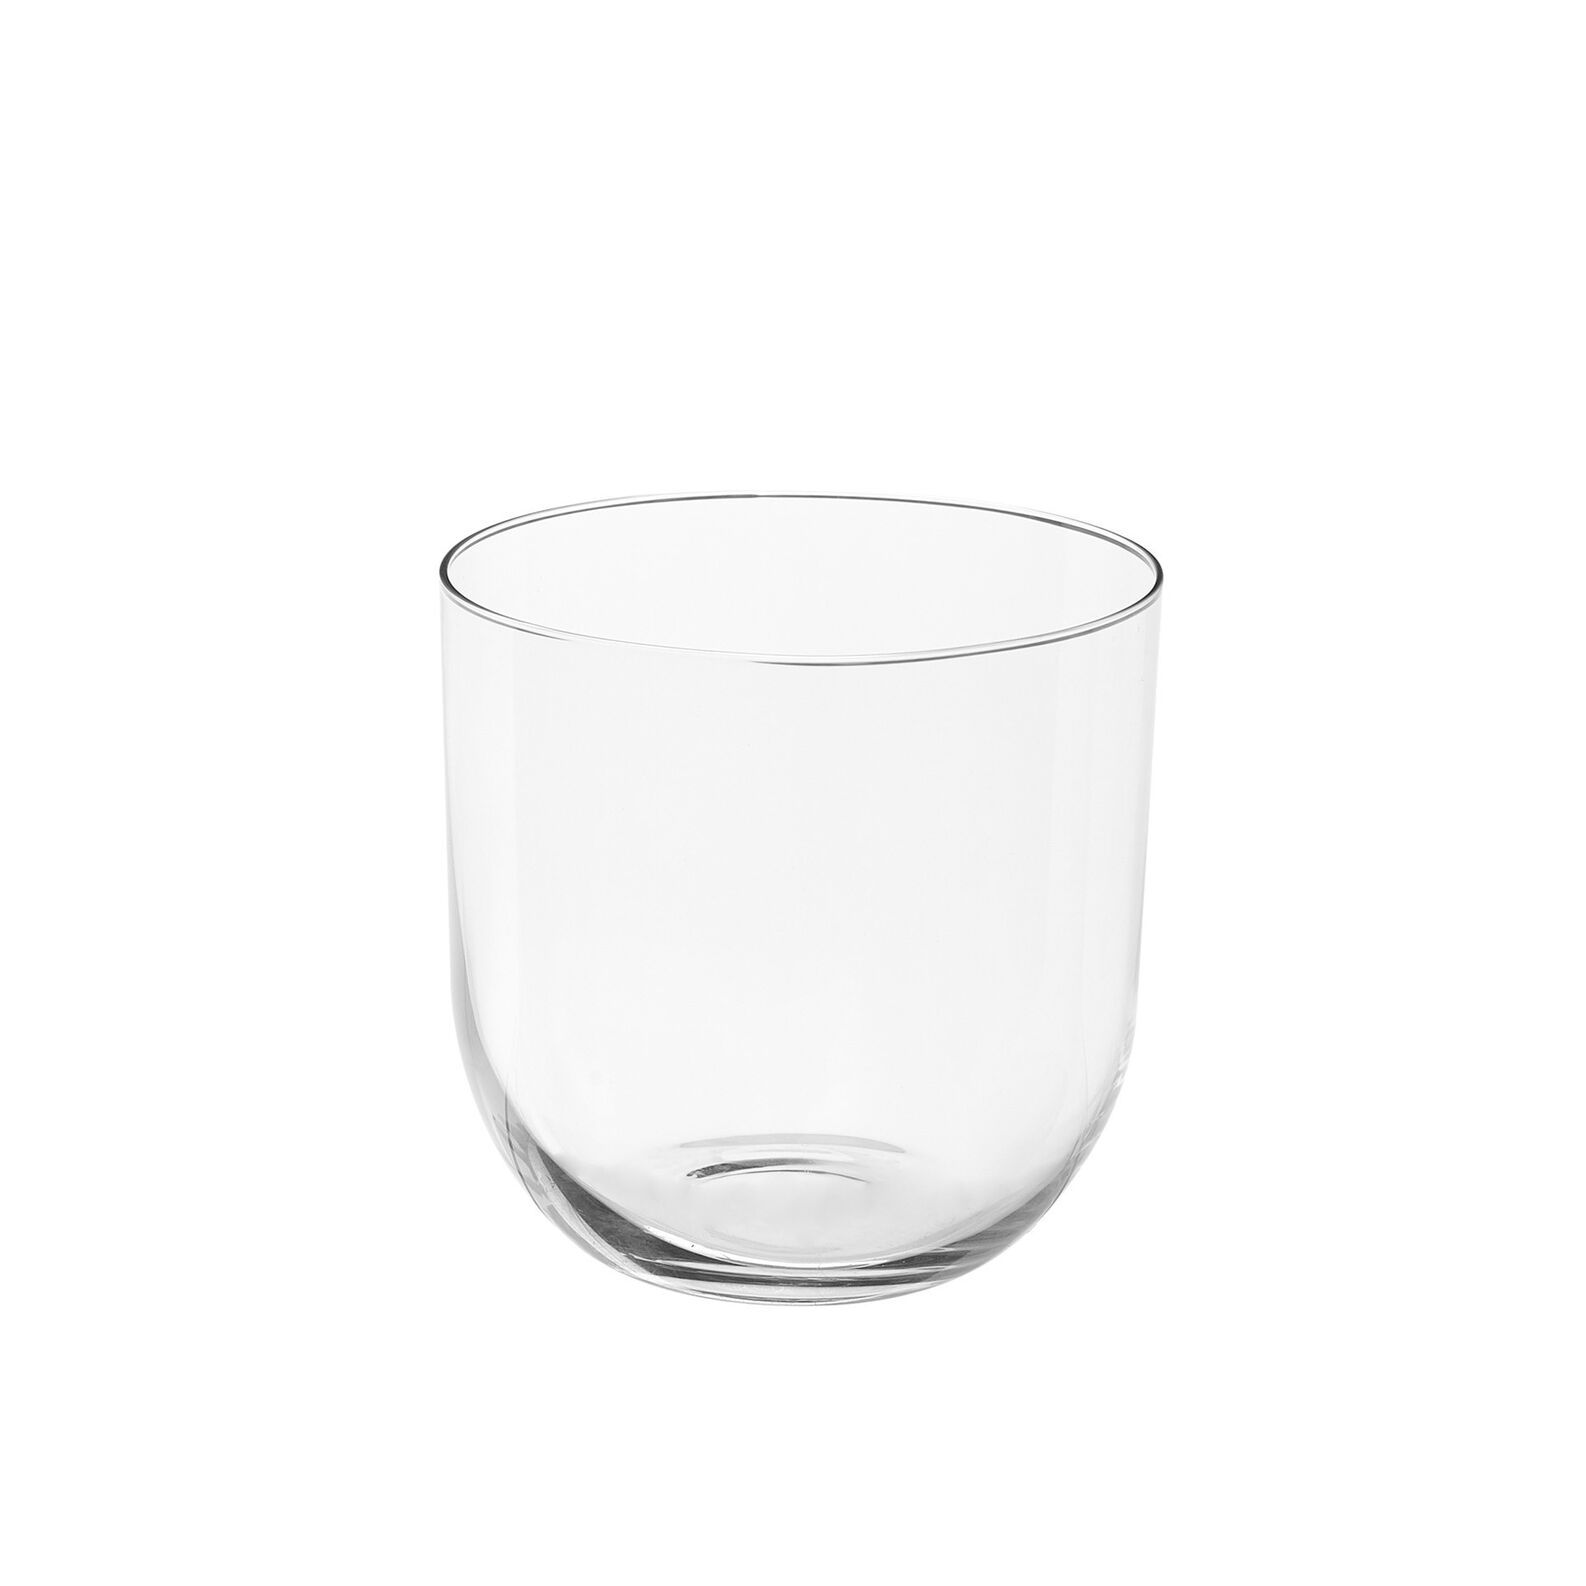 Set of 6 Drop water tumblers